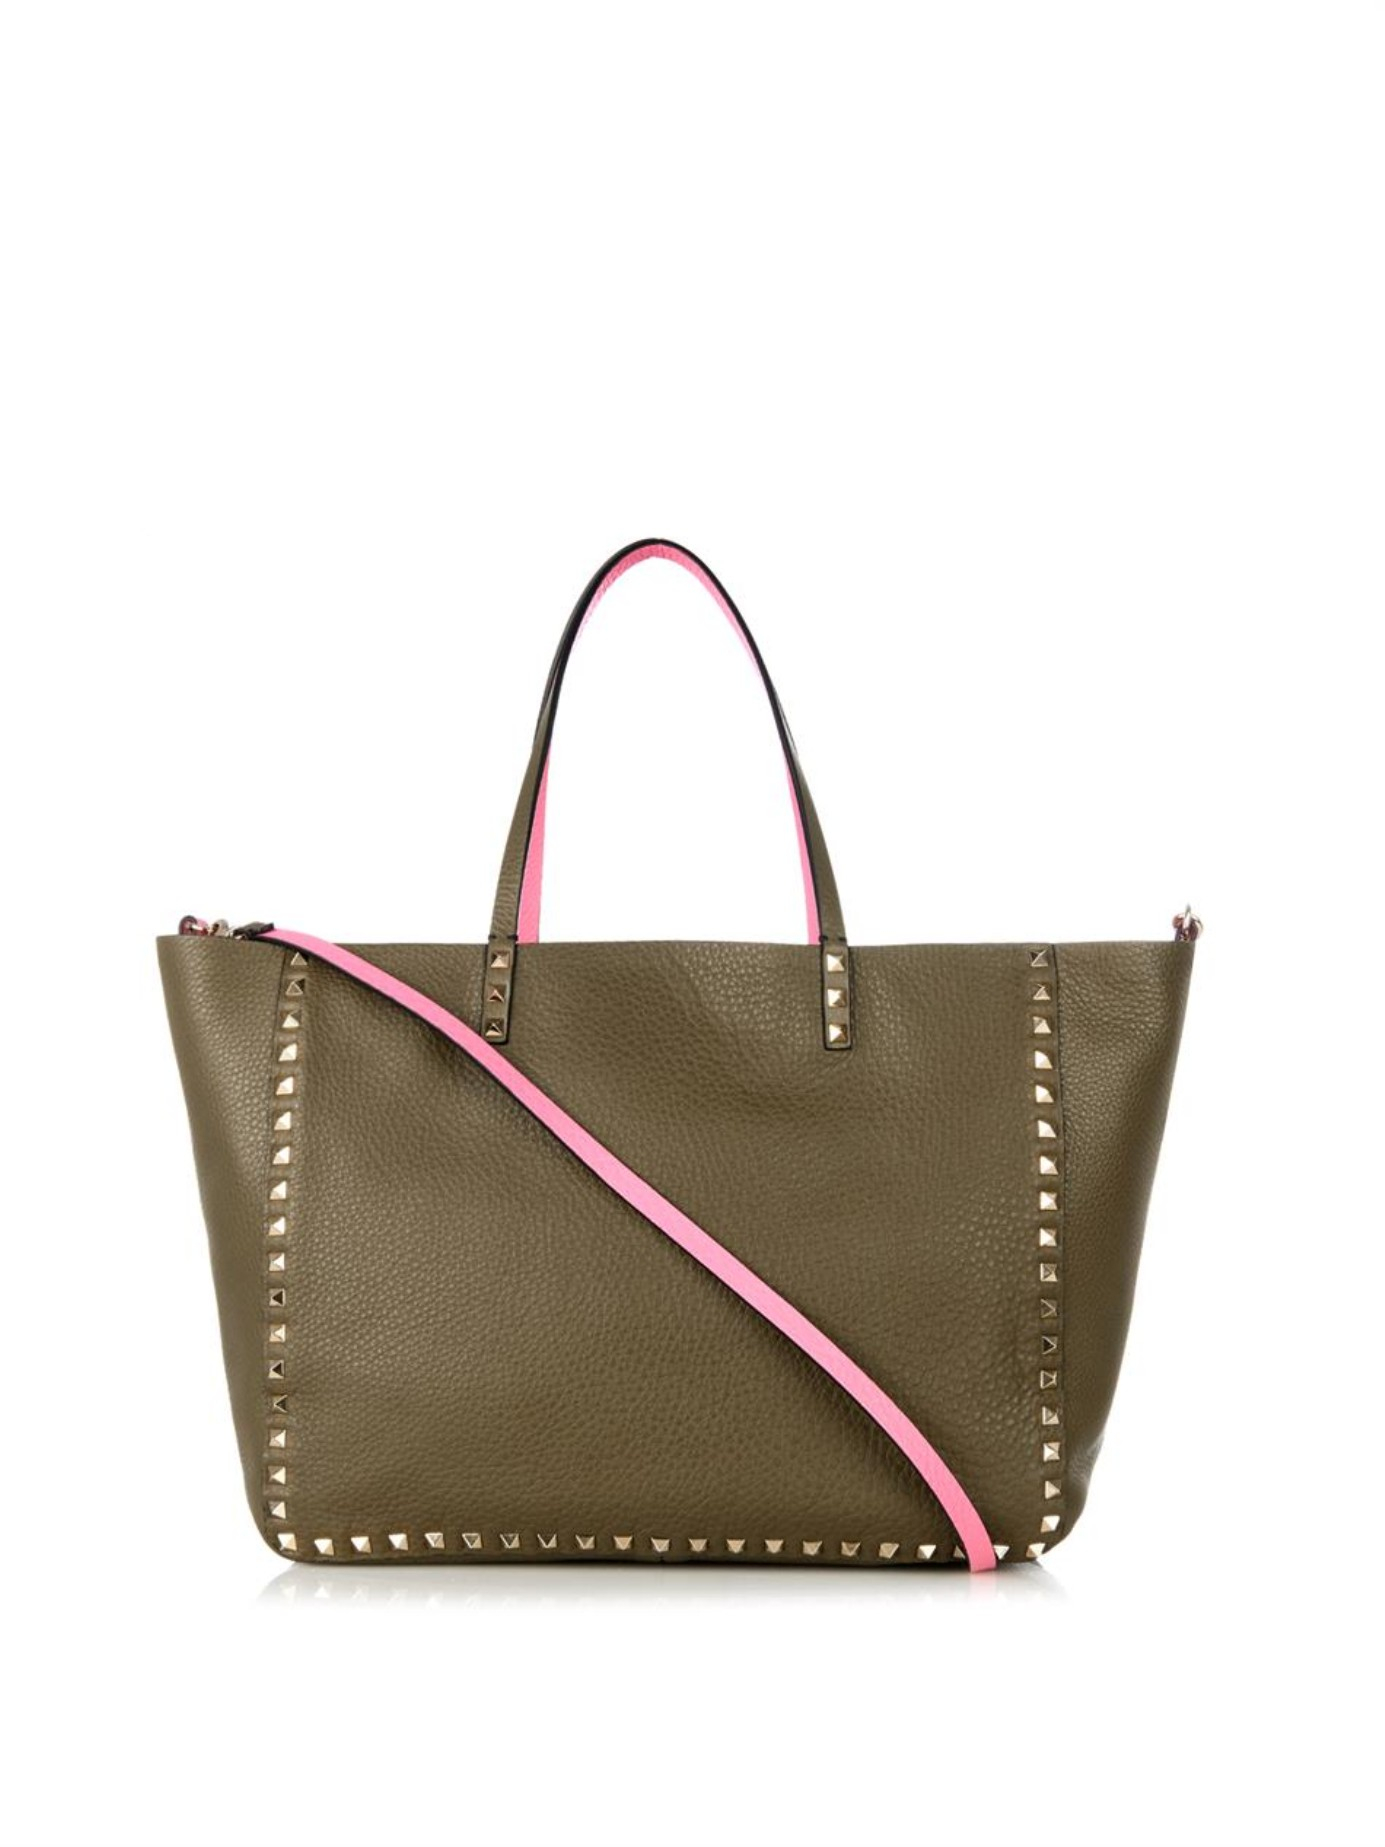 6d0e712bc4 Valentino Rockstud Double Reversible Medium Tote in Green - Lyst